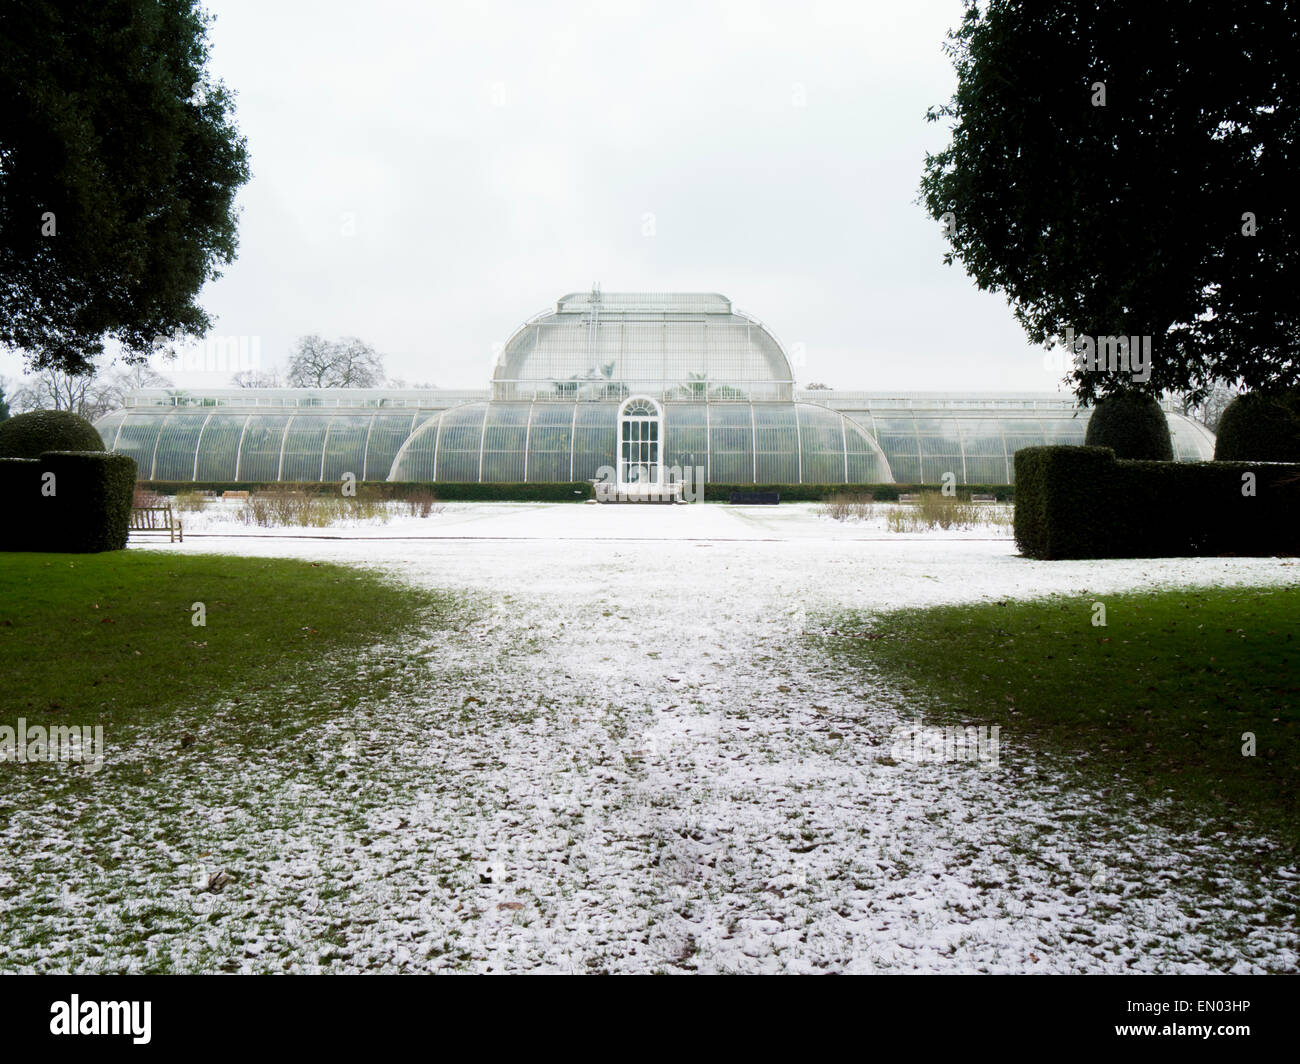 L'Europe, Royaume-Uni, Angleterre, Londres, les jardins de Kew Palm House d'hiver Photo Stock